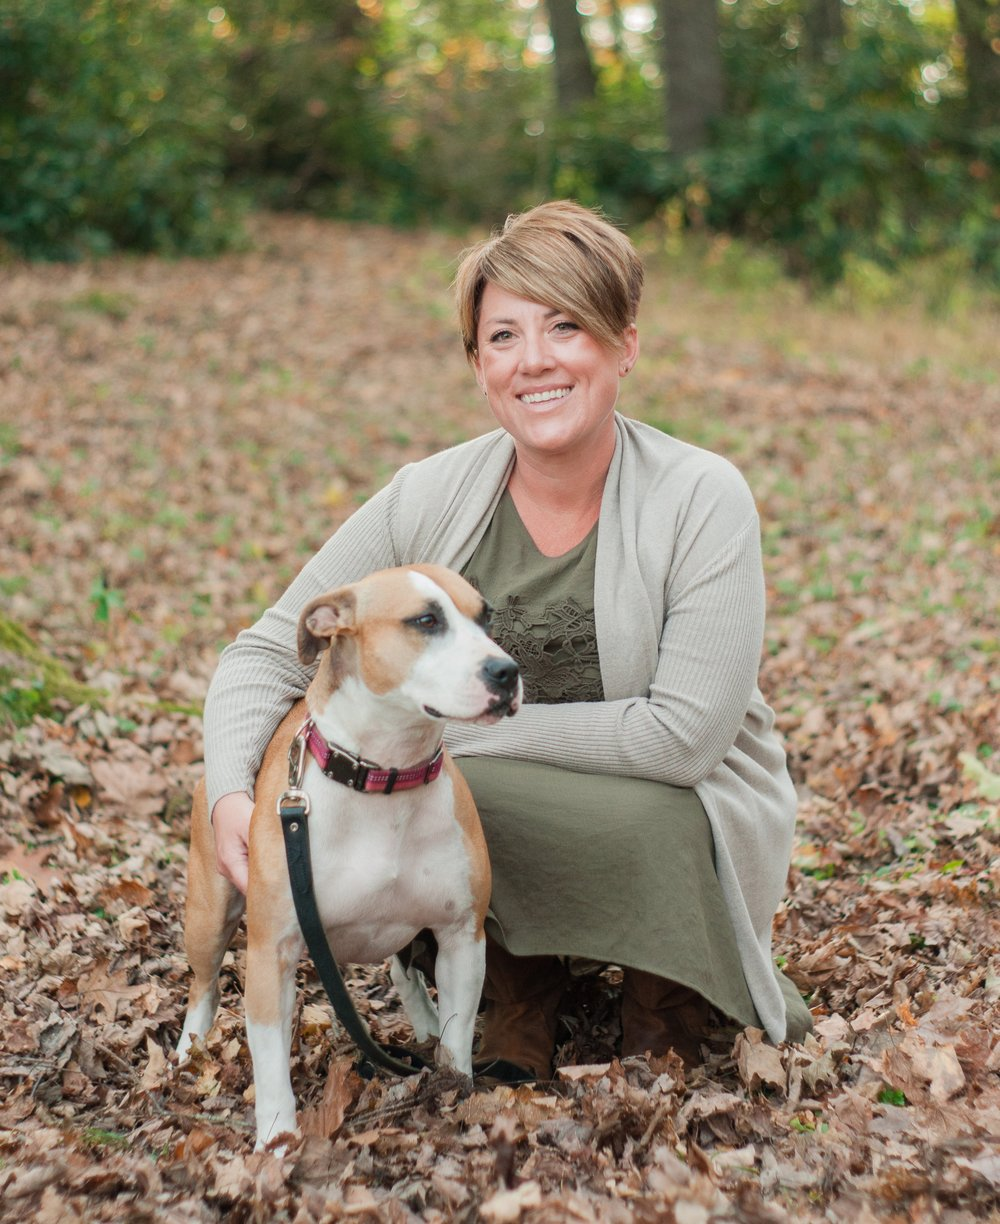 Jessica Janc is the High Country Watershed Coordinator. Originally from Ohio, Jessica earned a B.S. in Environmental Geography and Biology from Ohio University. Previously, Jessica worked for a company that manufactures and designs water quality monitoring equipment and for a watershed group in Southeast Ohio. Jessica and her family now live in Boone where they spend as much time as possible on the New River, hiking, and traveling. She is currently working toward her North Carolina Environmental Education certification and serves on the board of Two Rivers Community School.